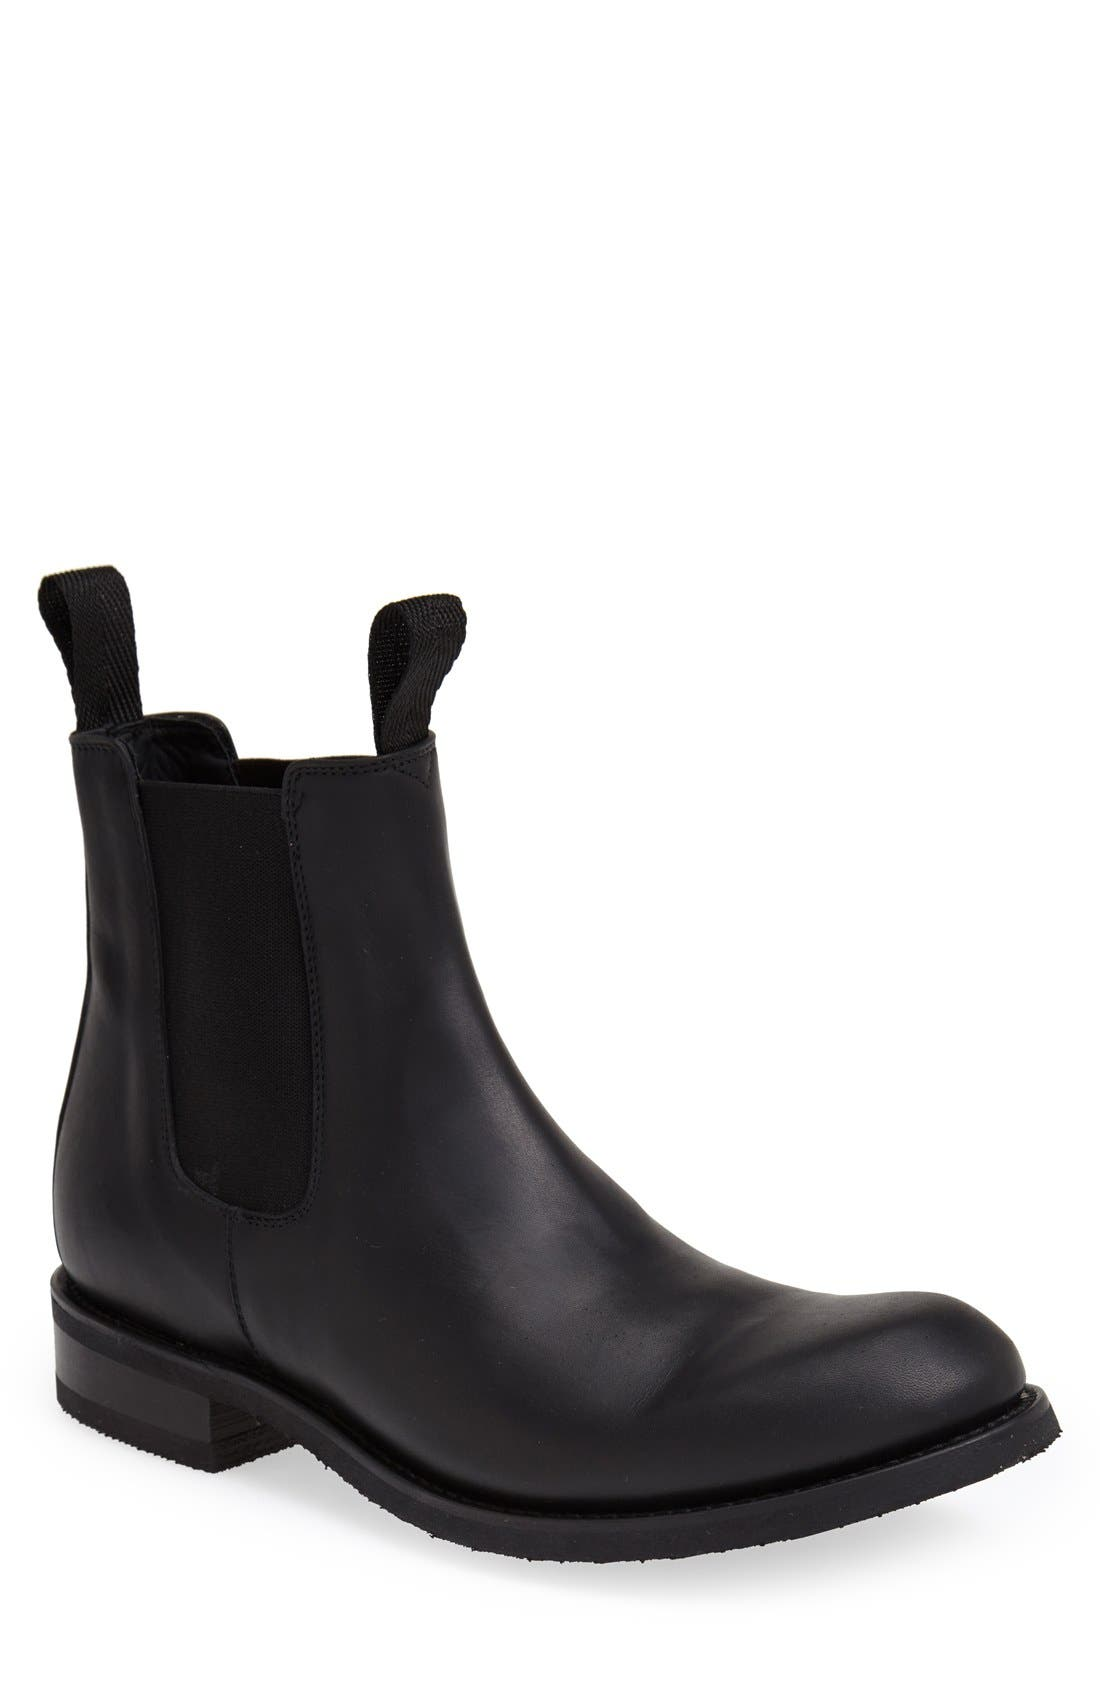 Alternate Image 1 Selected - Sendra 'Al' Chelsea Boot (Men)